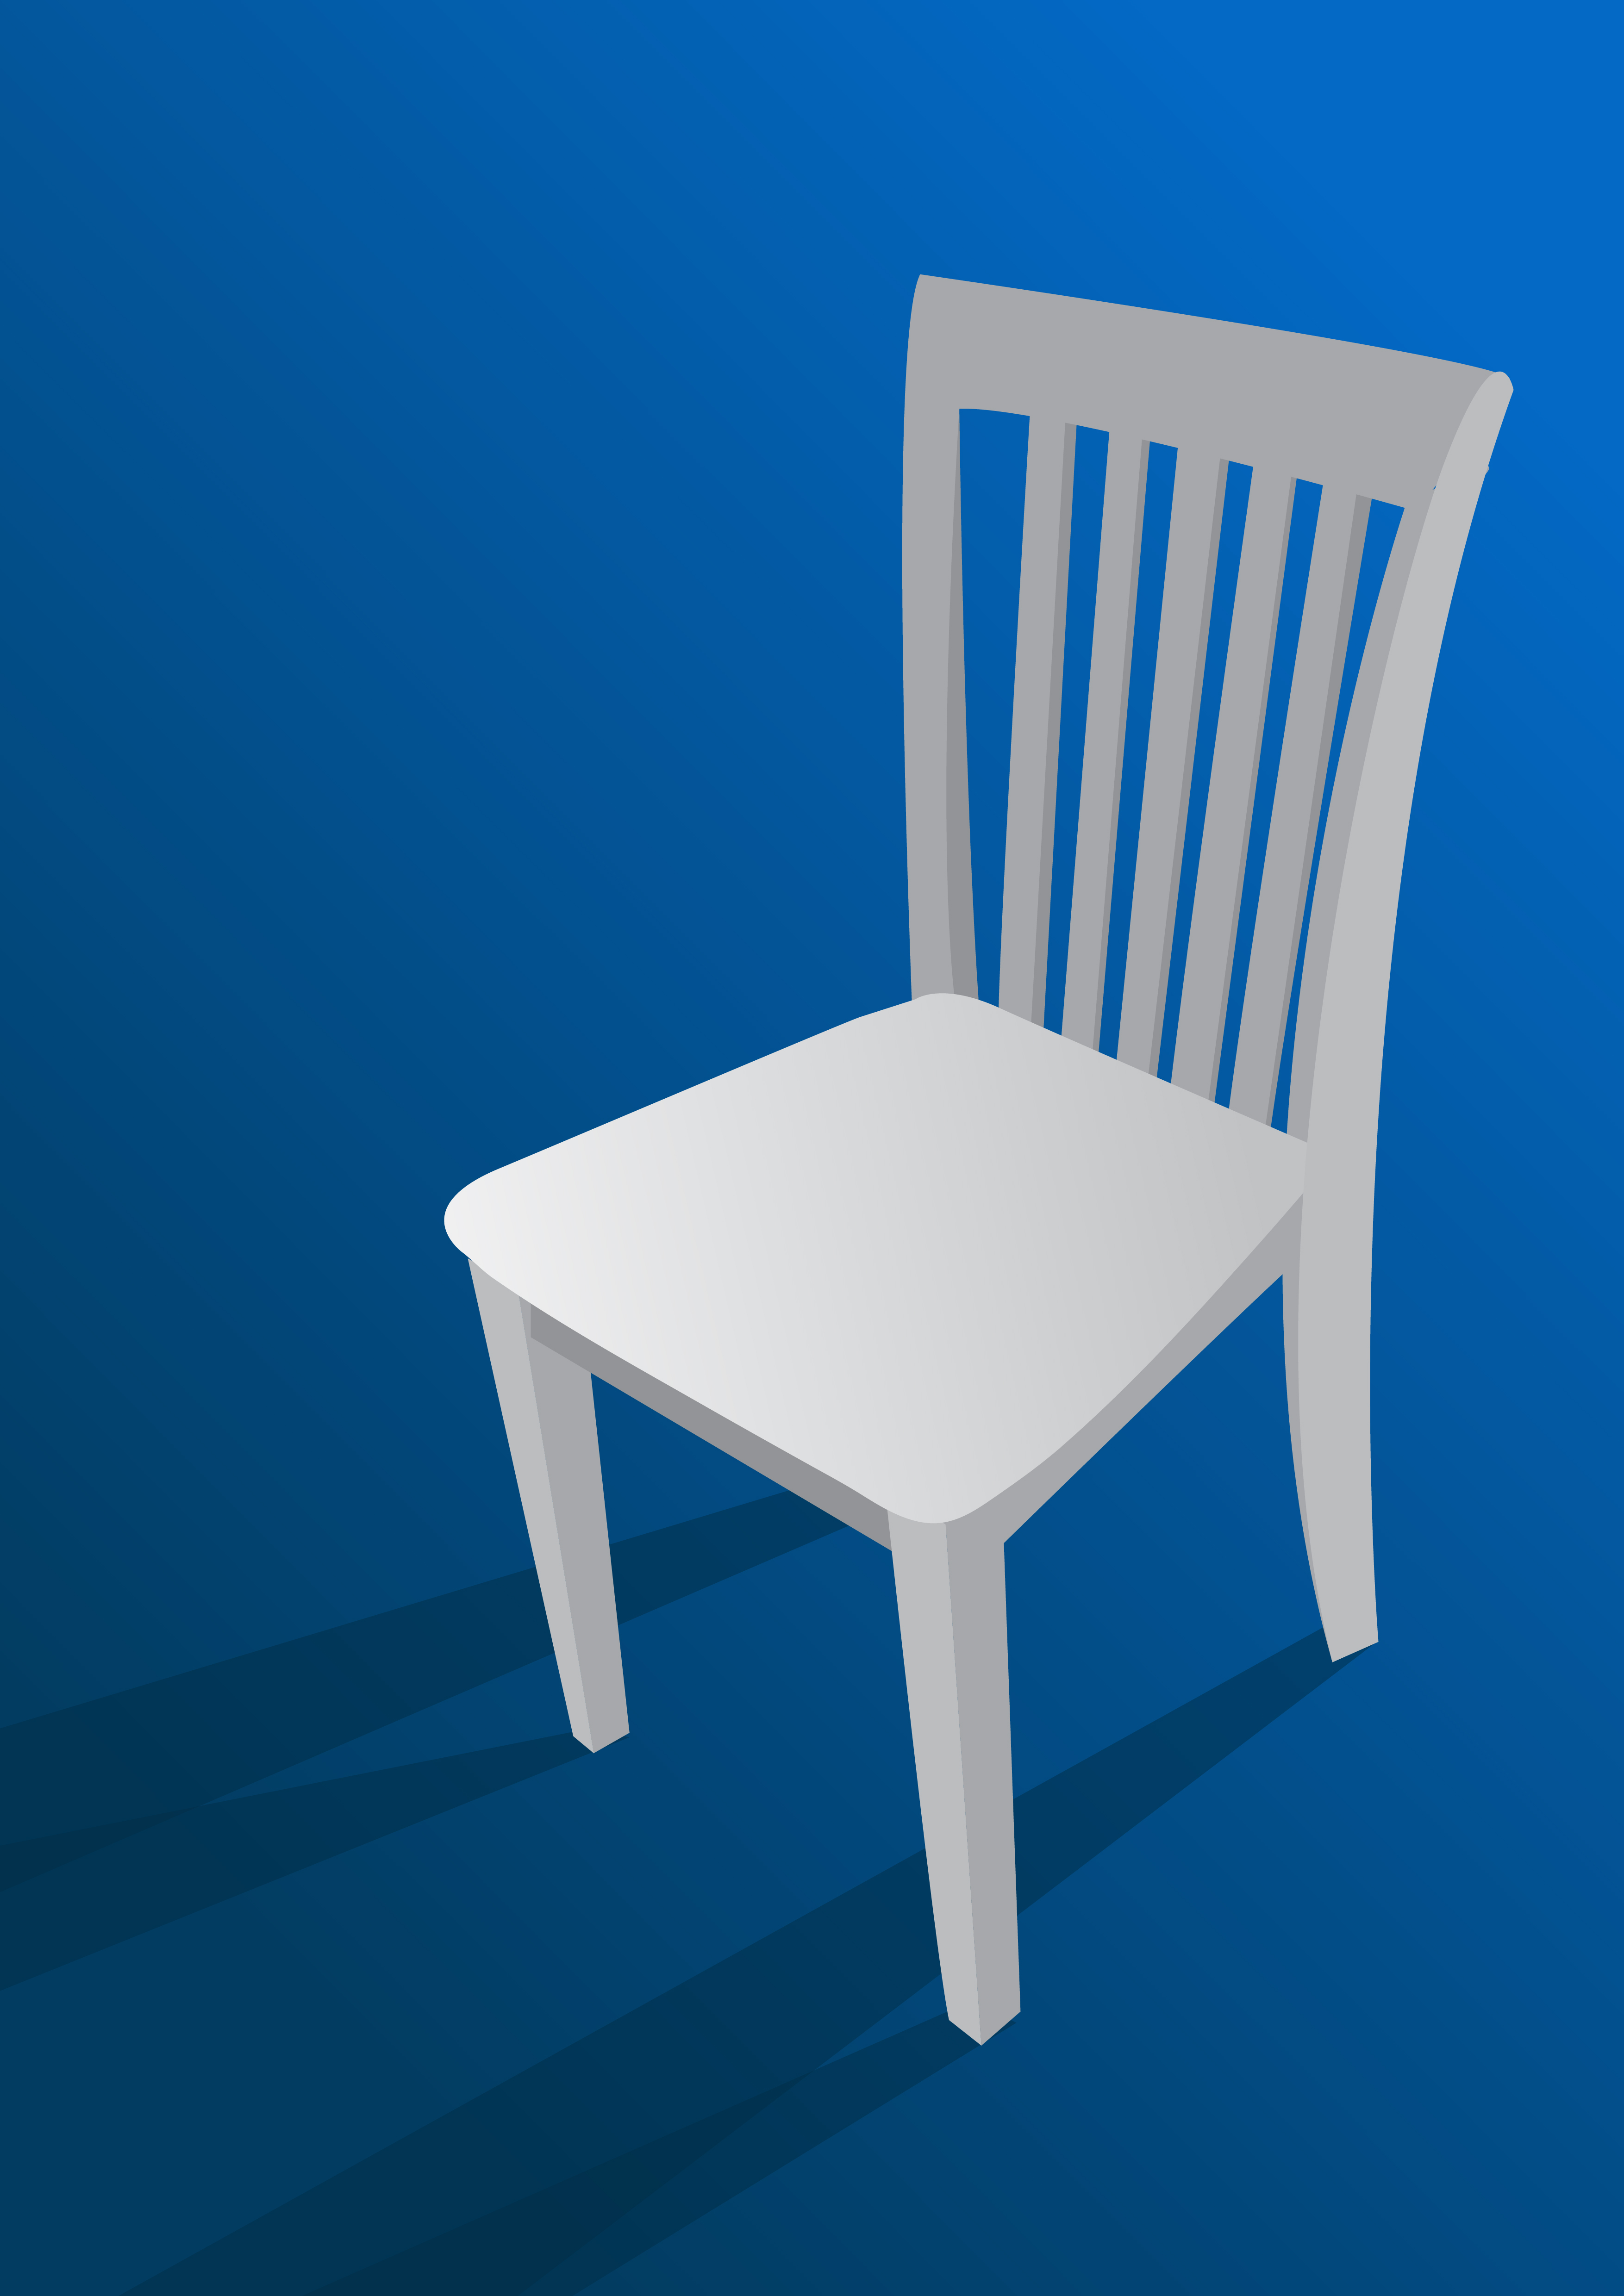 Chair On Blue Background Download Free Vector Art Stock